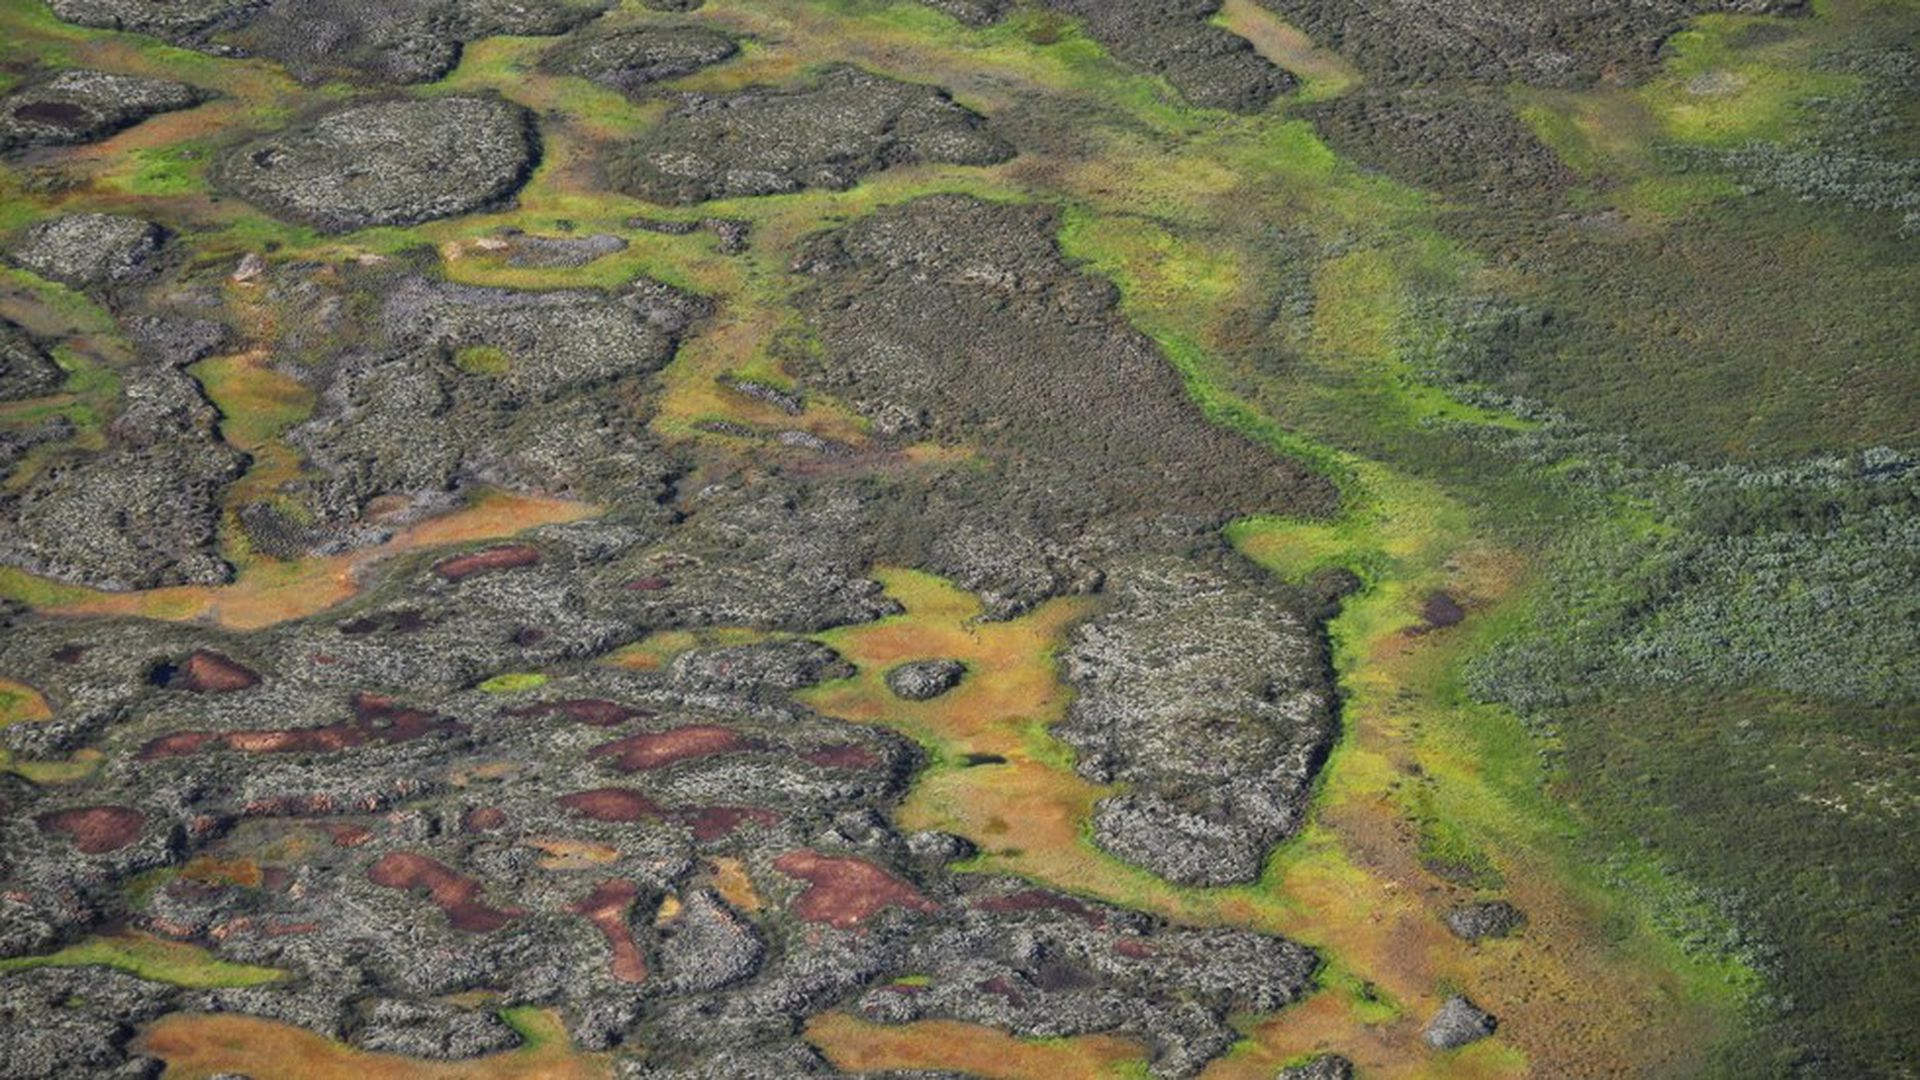 Thawing Arctic peatlands could release potent greenhouse gas